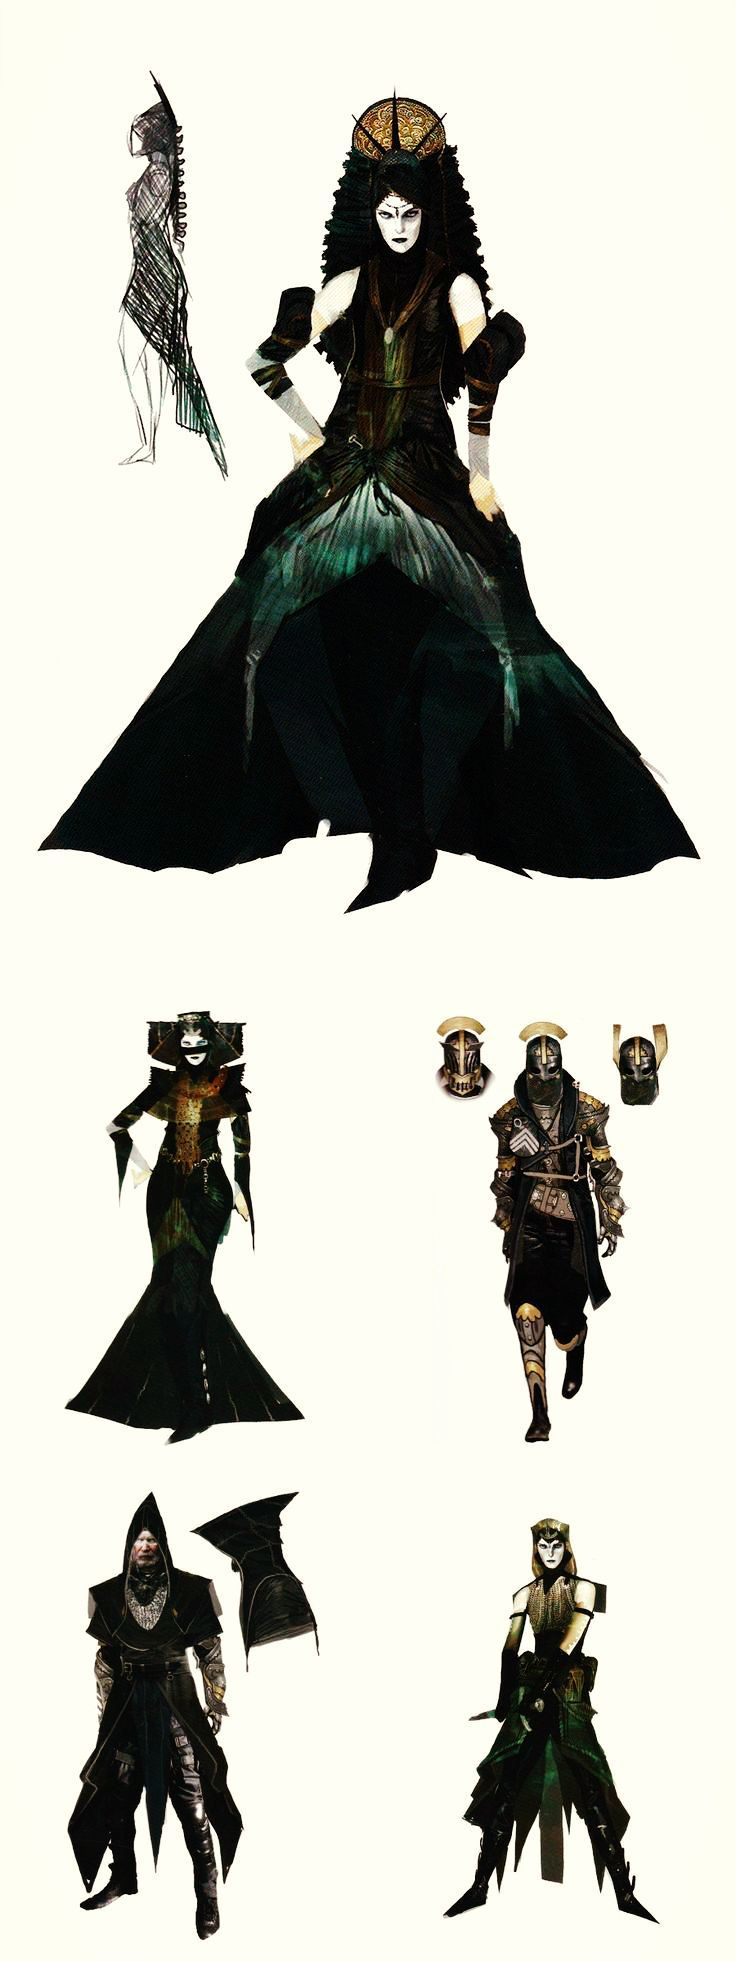 Dragon Age Inquisition Character Design Ideas : Tevinter fashion in the art of dragon age inquisition i